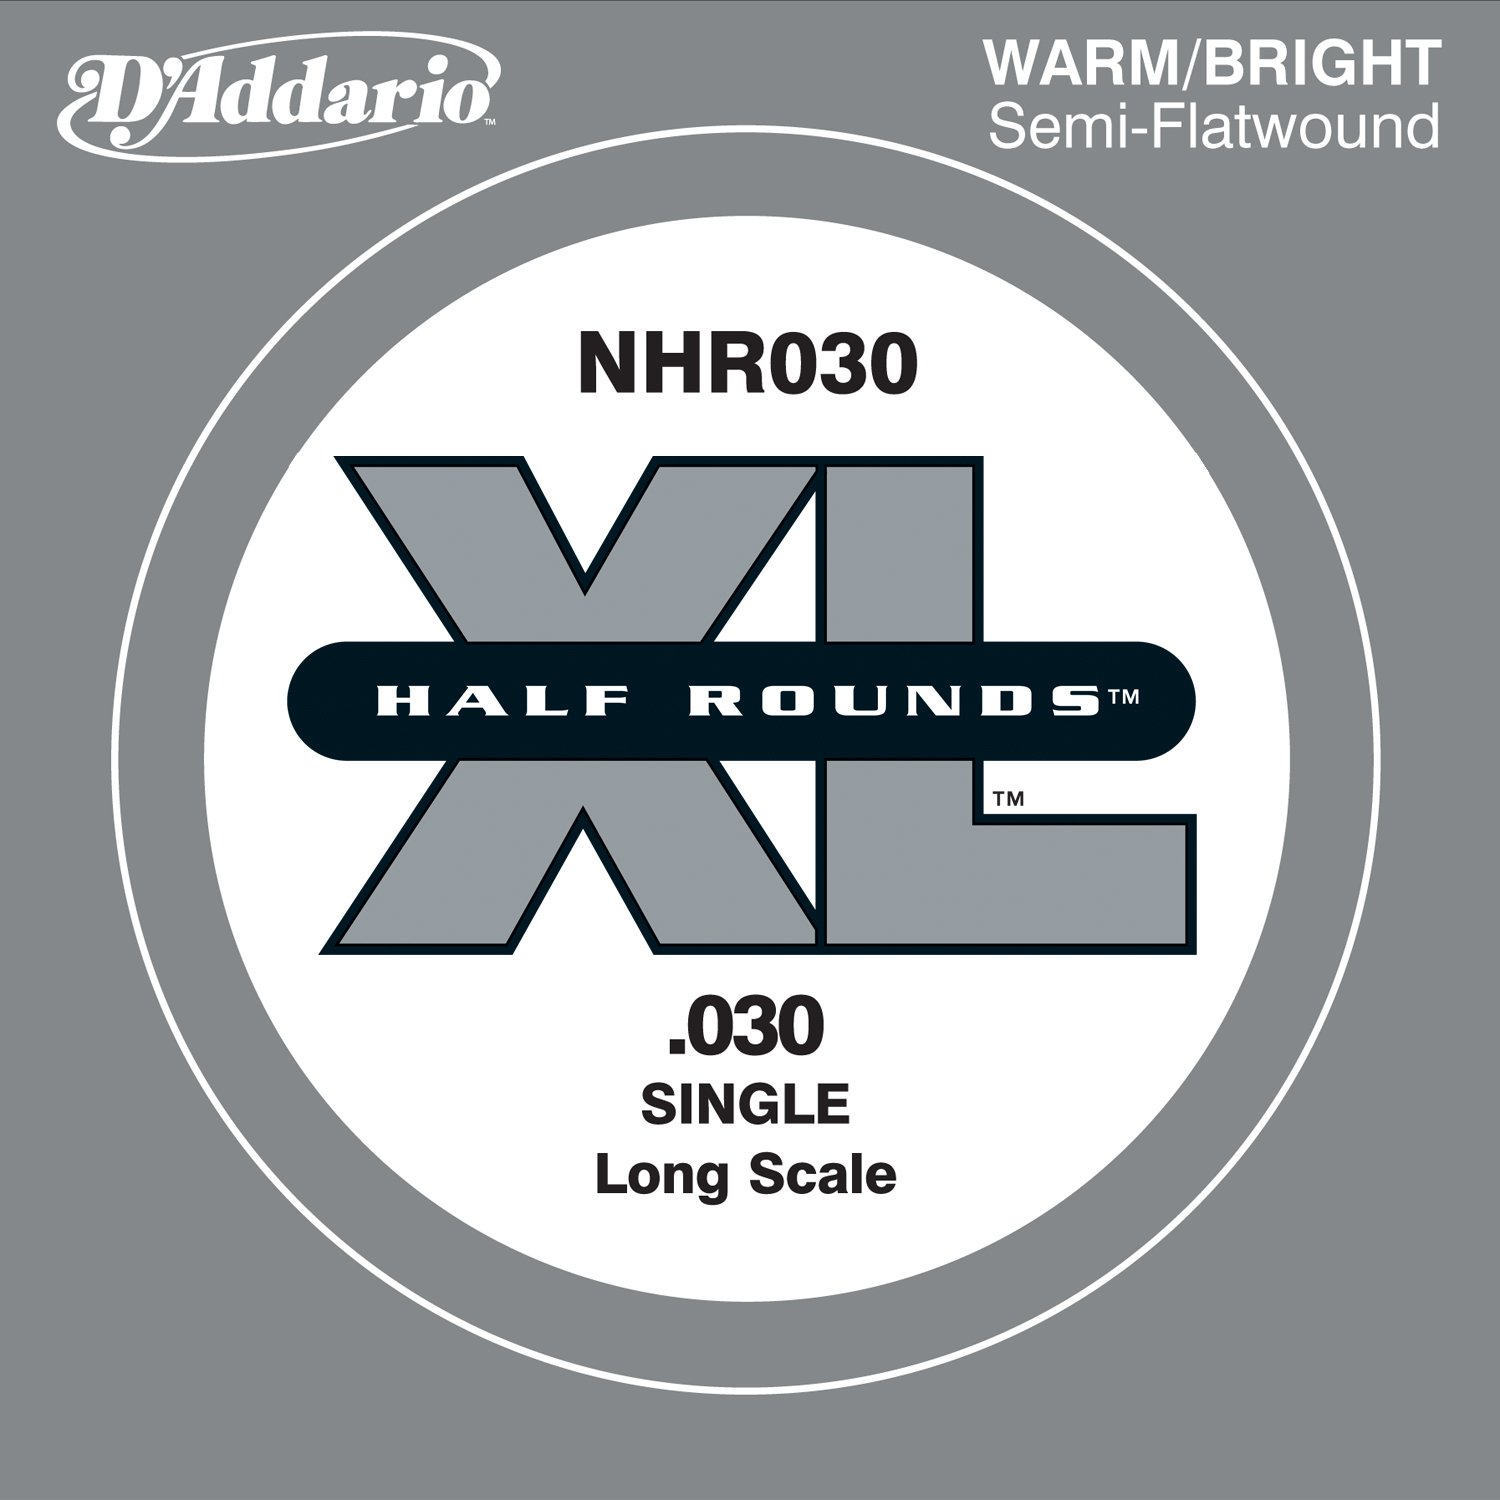 D'Addario NHR030 Half Round Bass Guitar Single String, Long Scale, .030 D' Addario